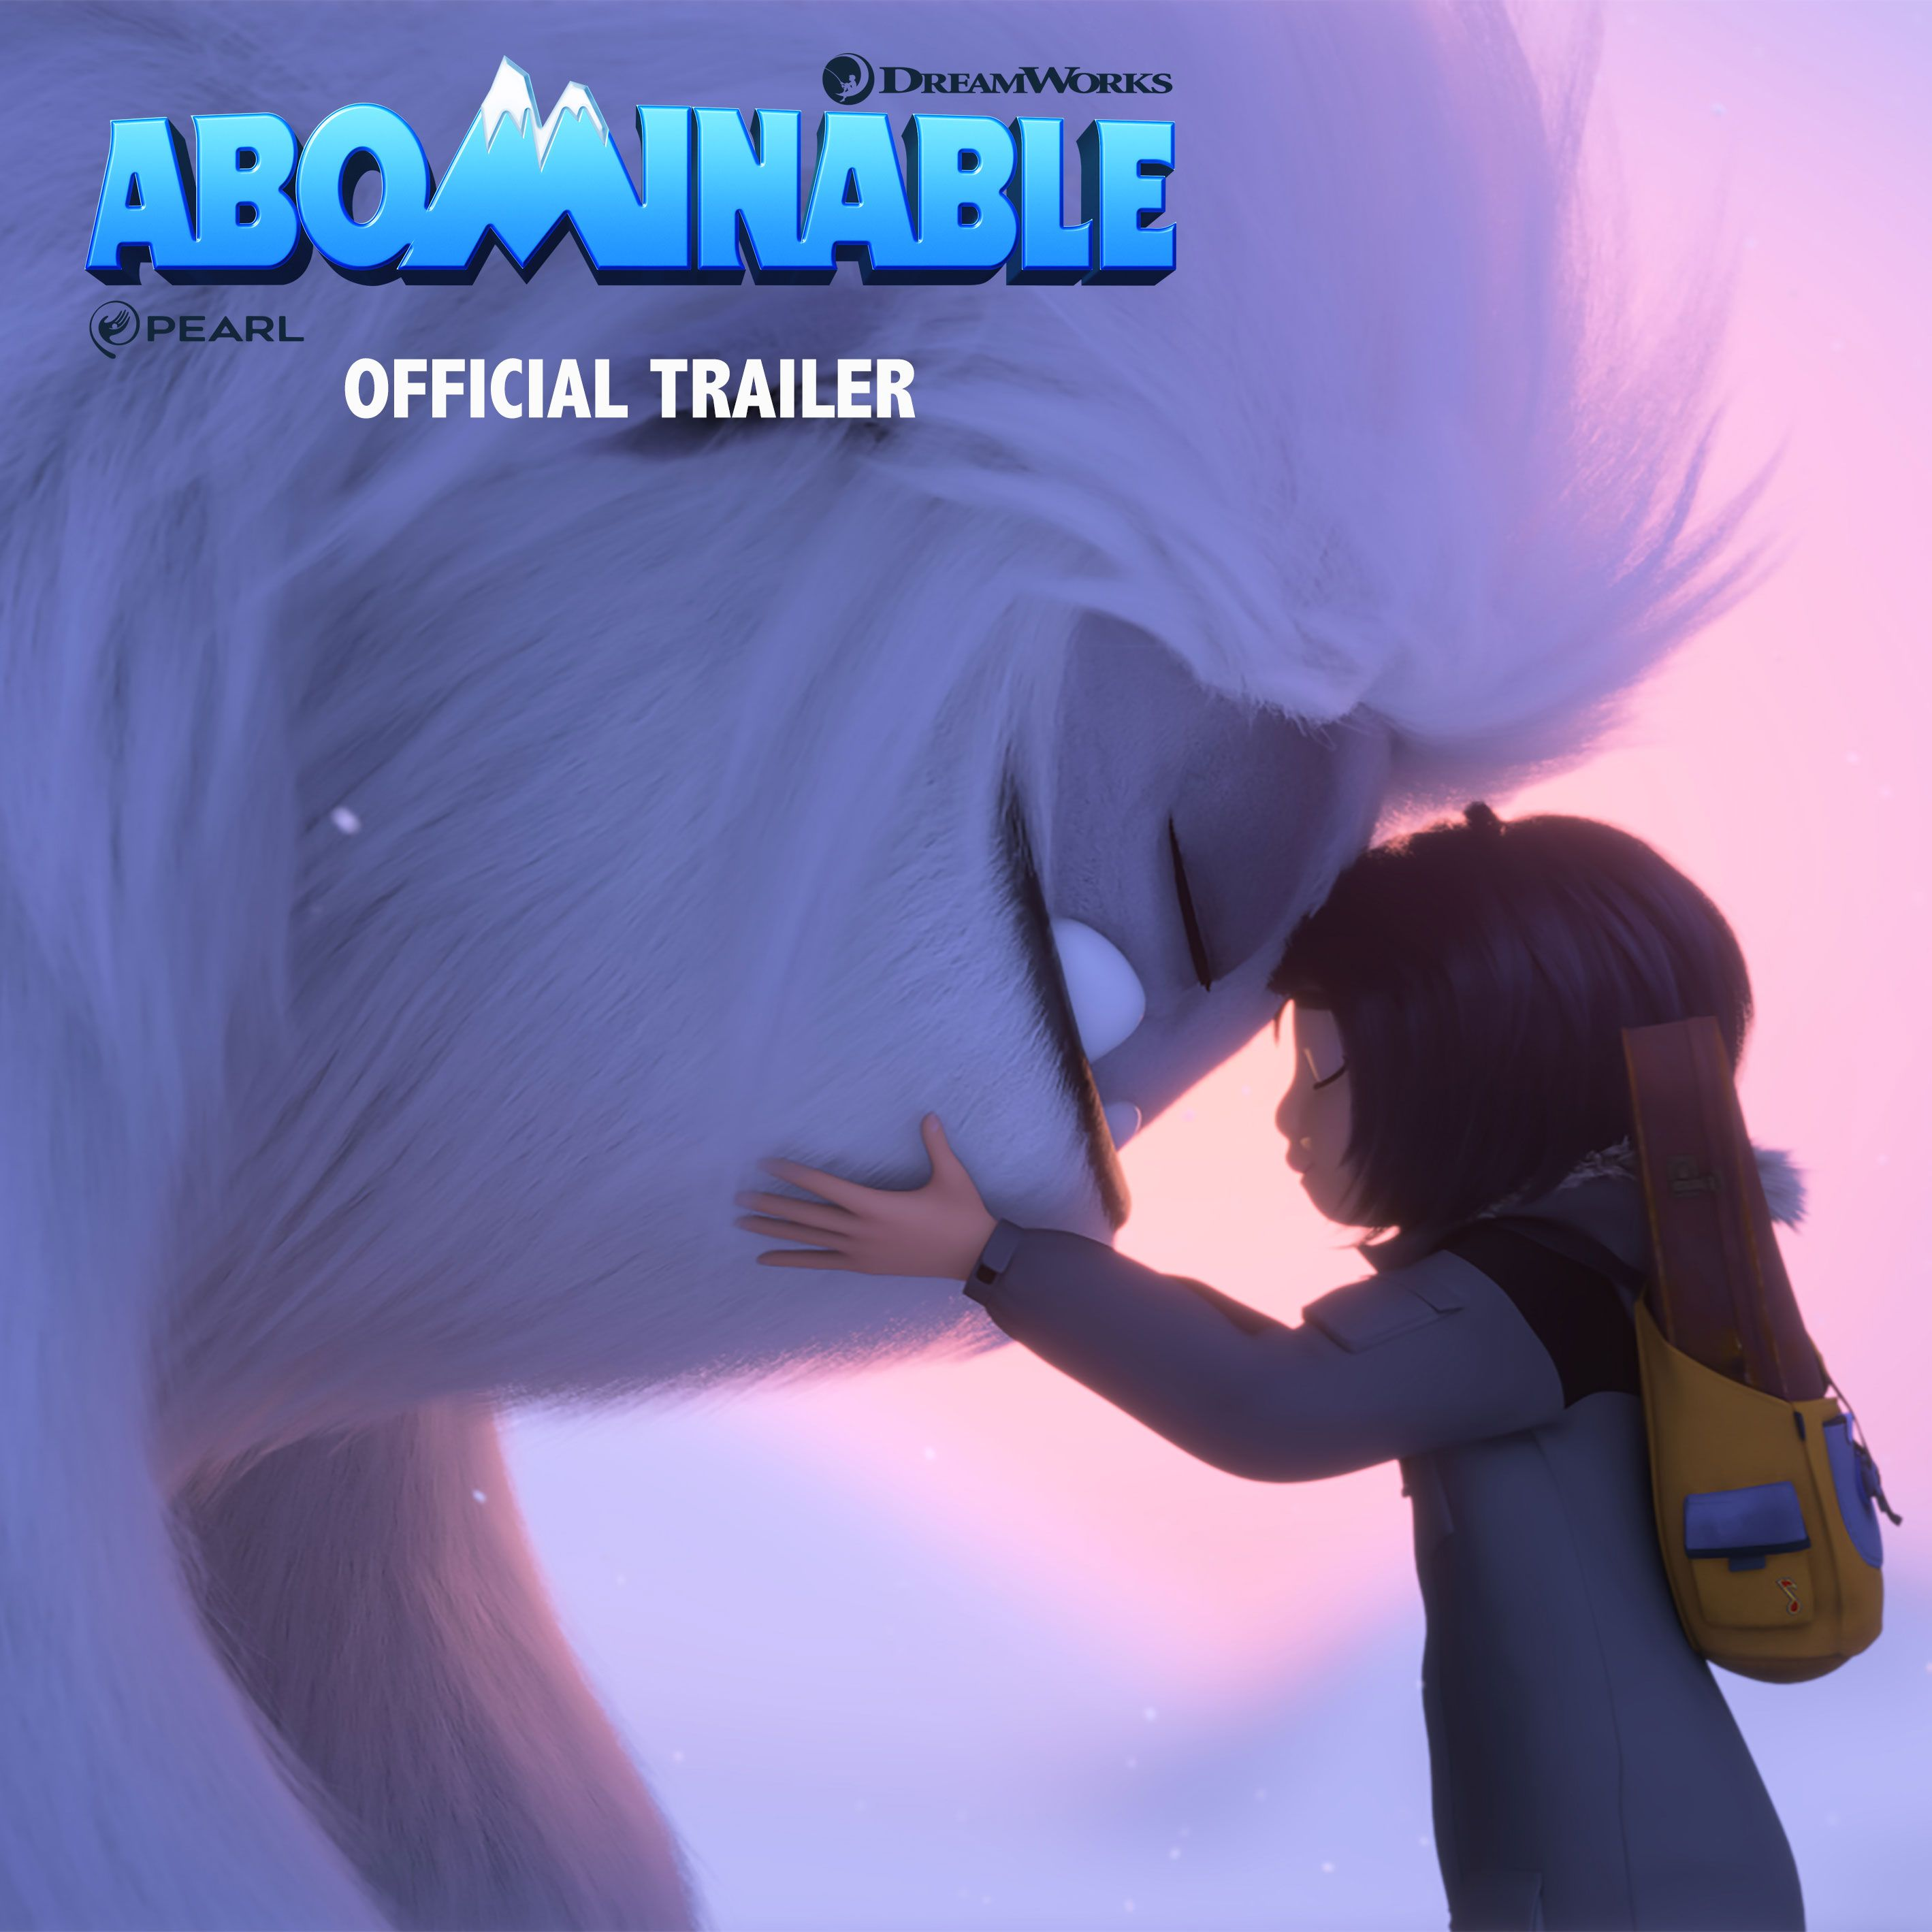 Abominable Video Funny Films Night Film Really Good Movies